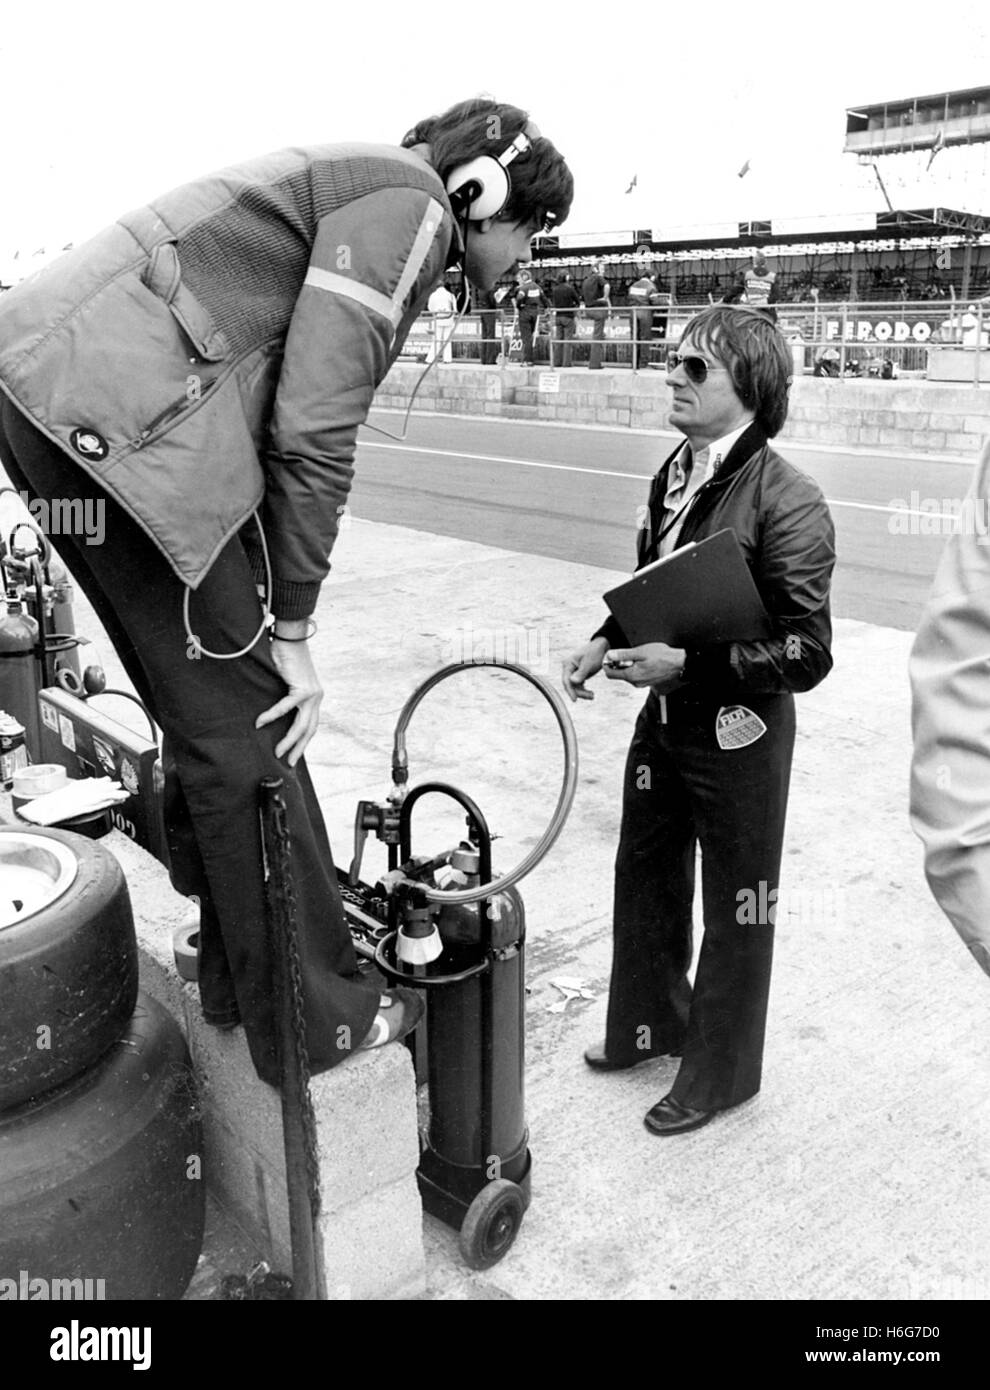 BRITISH GP SILVERSTONE GORDON MURRAY and  BERNIE ECCLESTONE 1977 - Stock Image